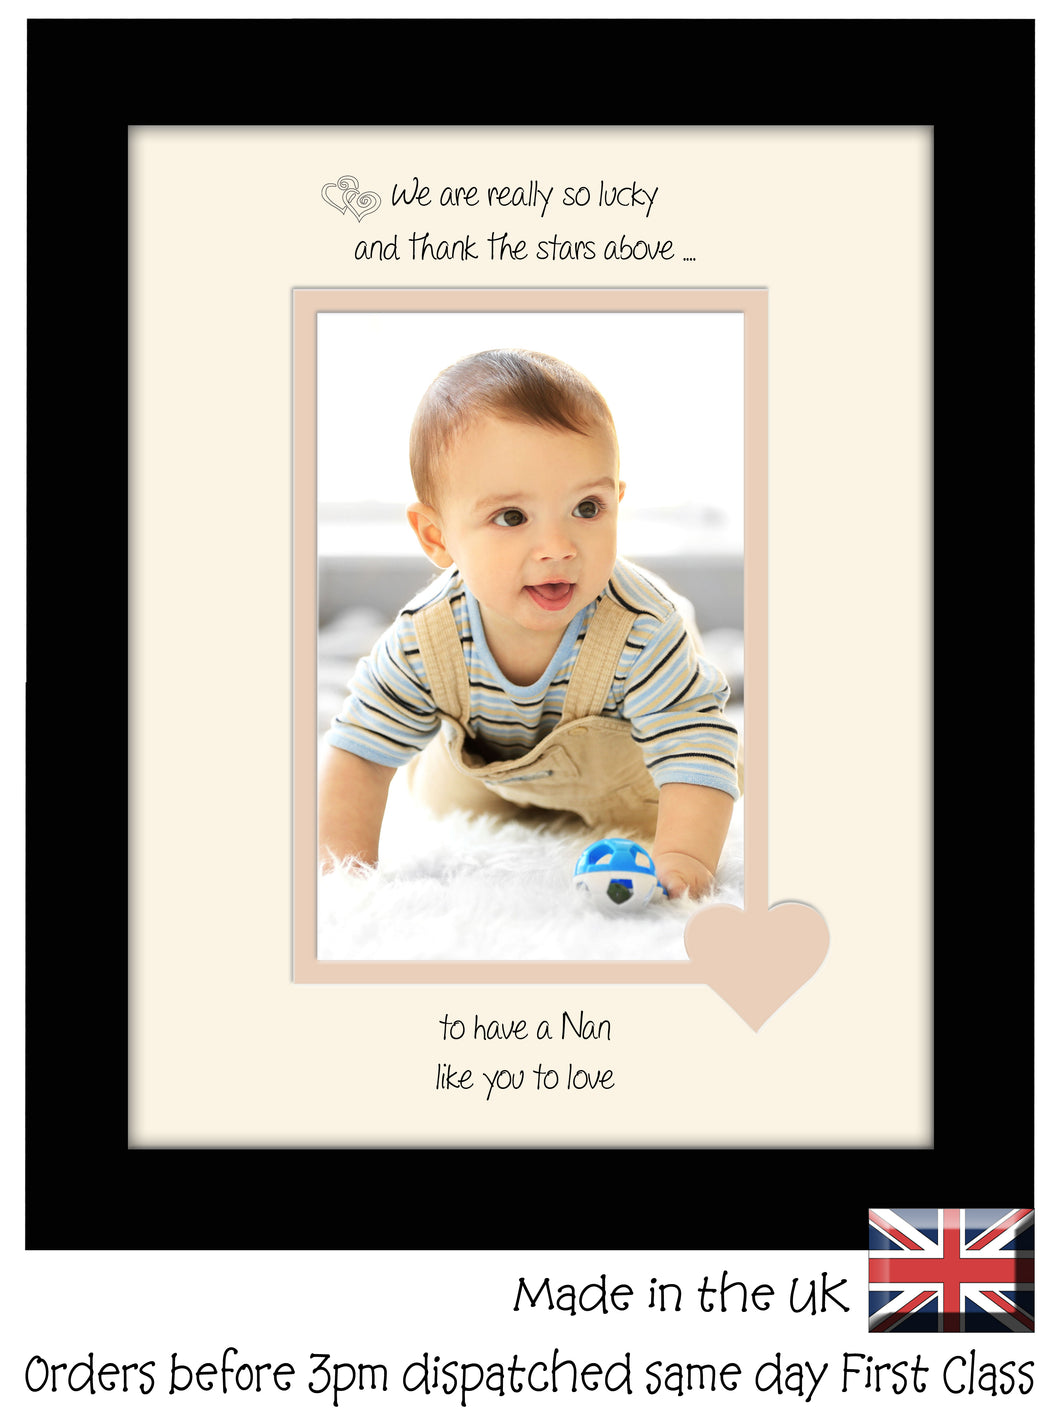 Nan Photo Frame - We Thank the stars Nan Portrait photo frame 6